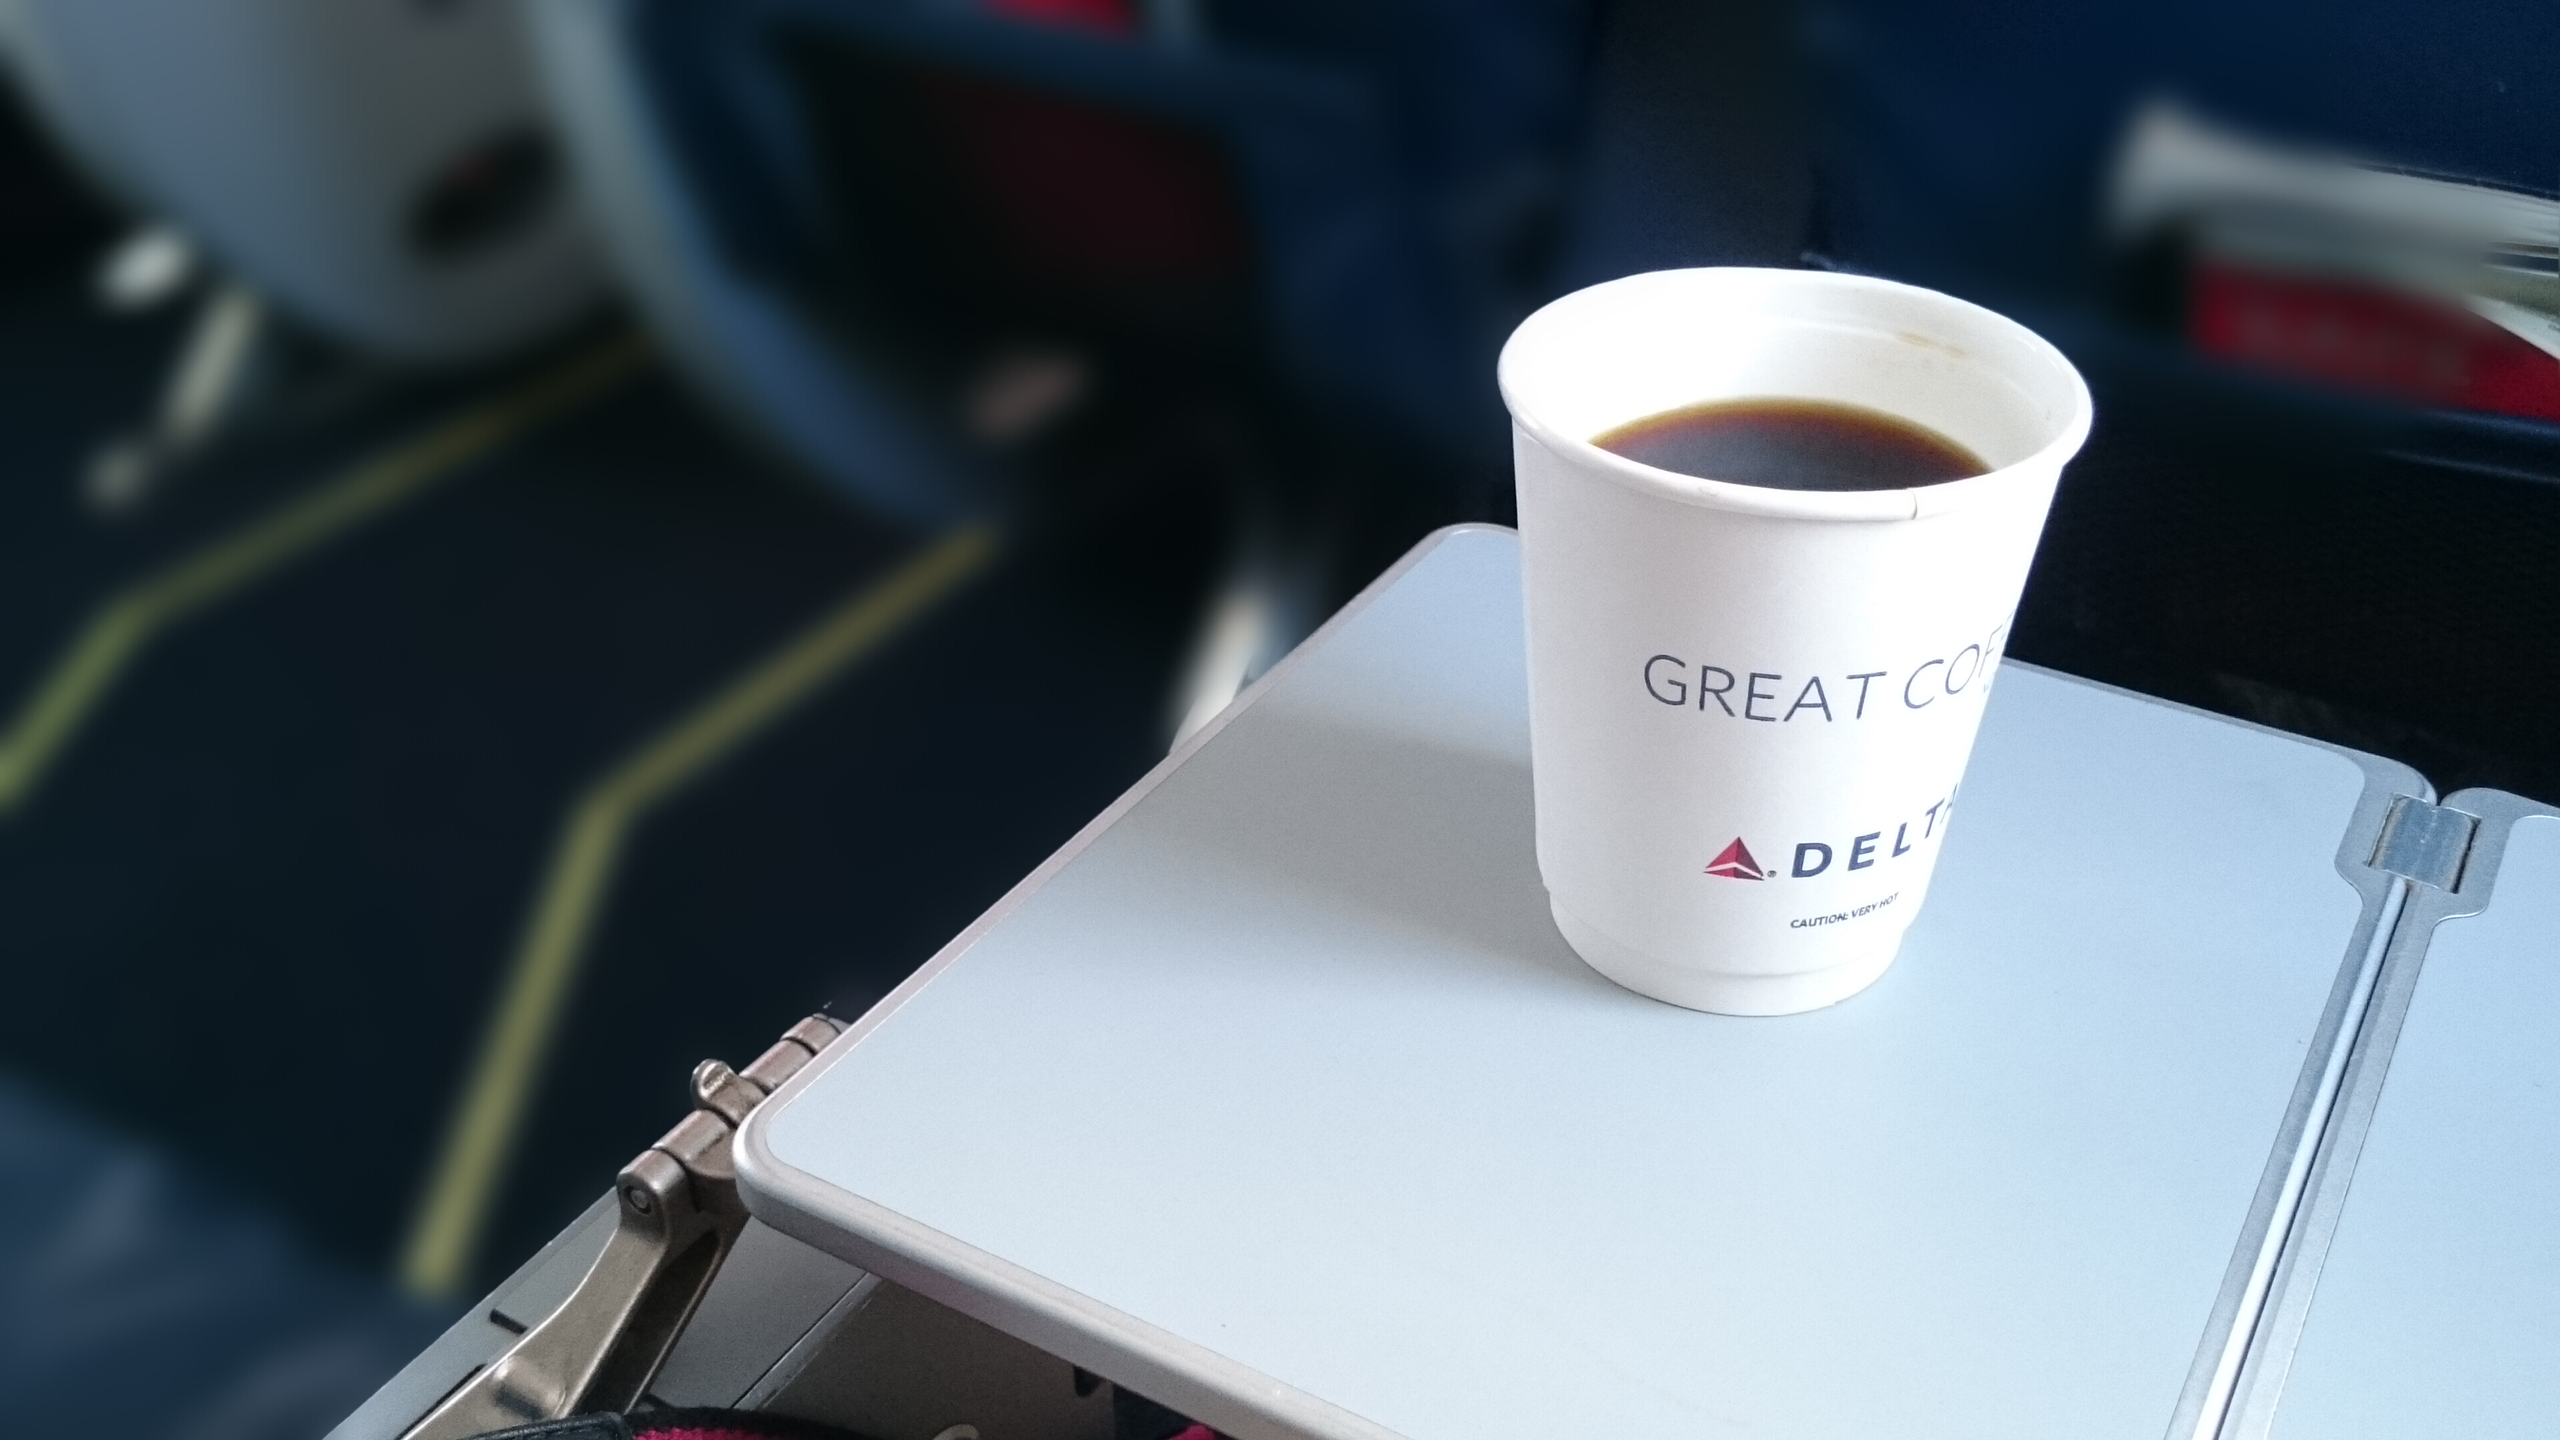 Delta Comfort Plus in row 5 with tray extended...and coffee.